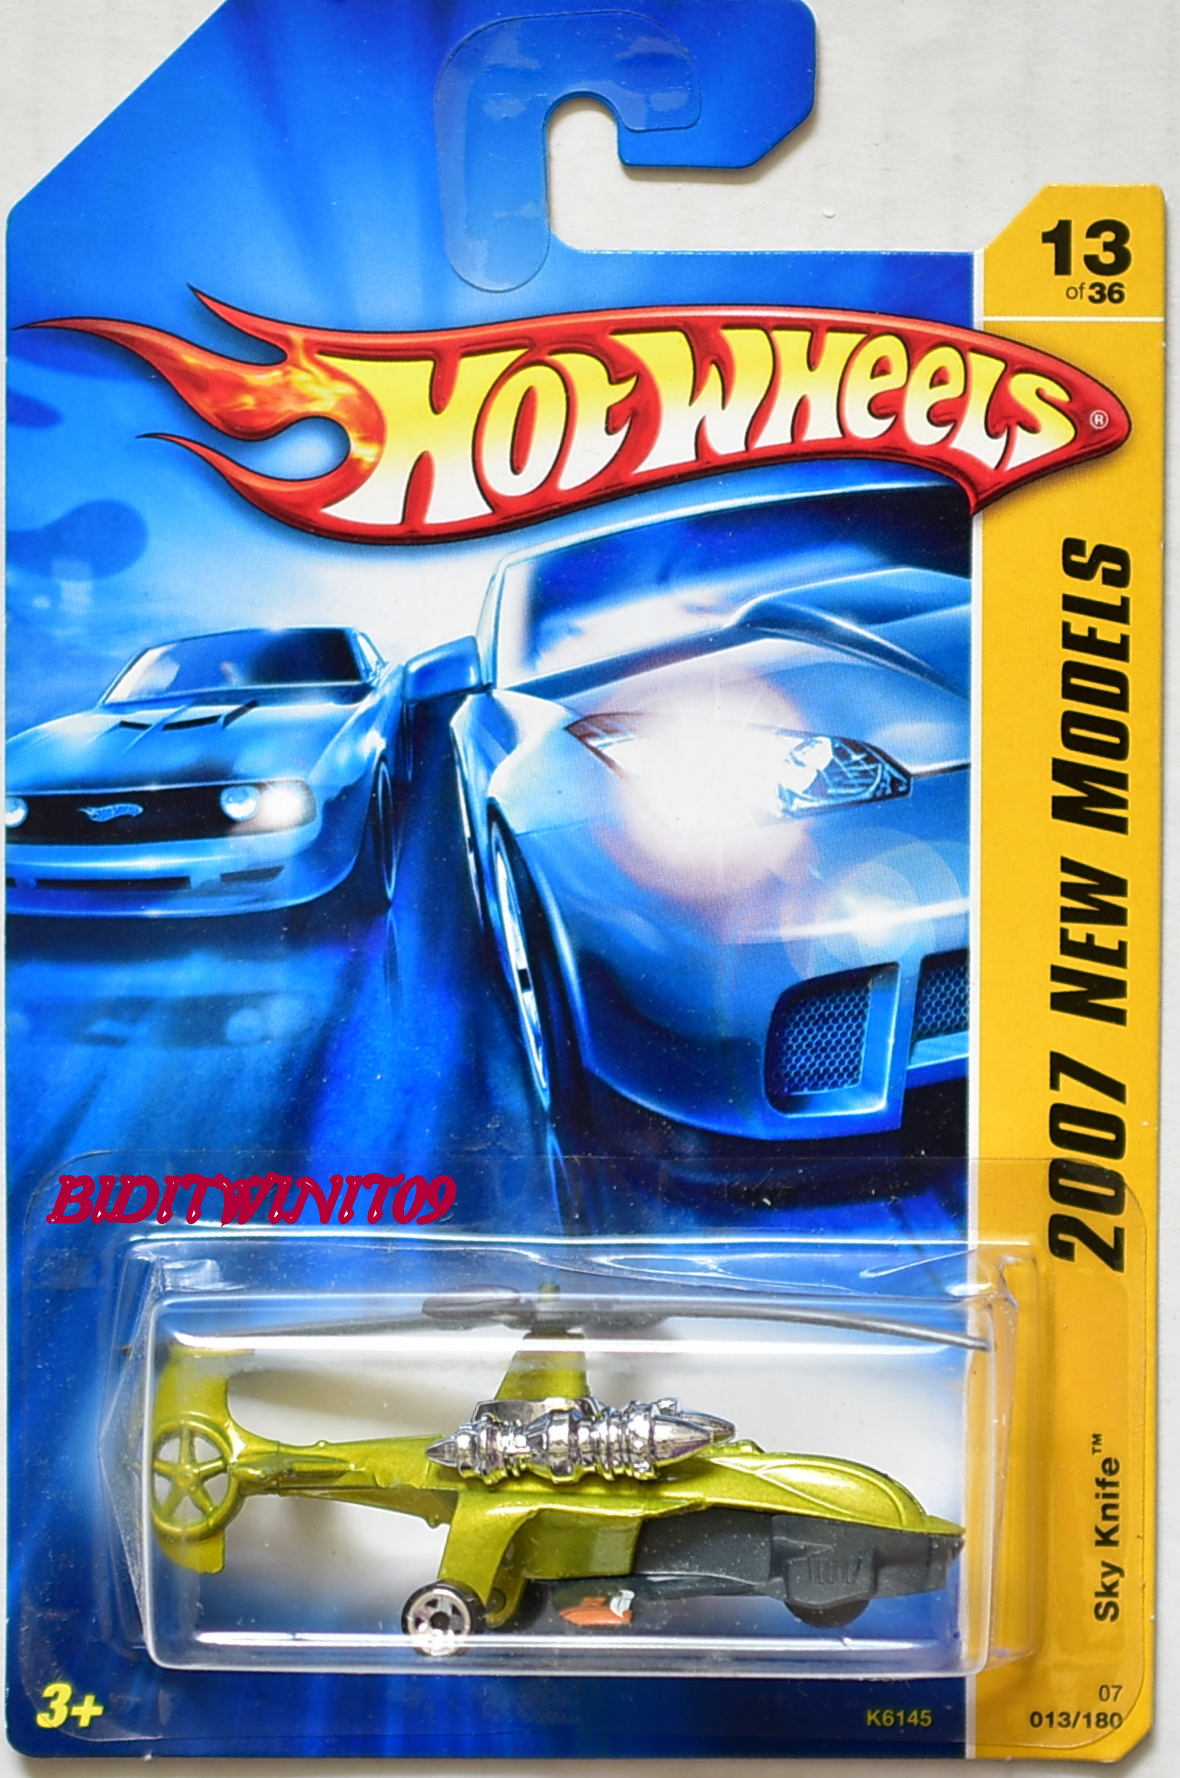 HOT WHEELS 2007 NEW MODELS SKY KNIFE #13/36 GREEN